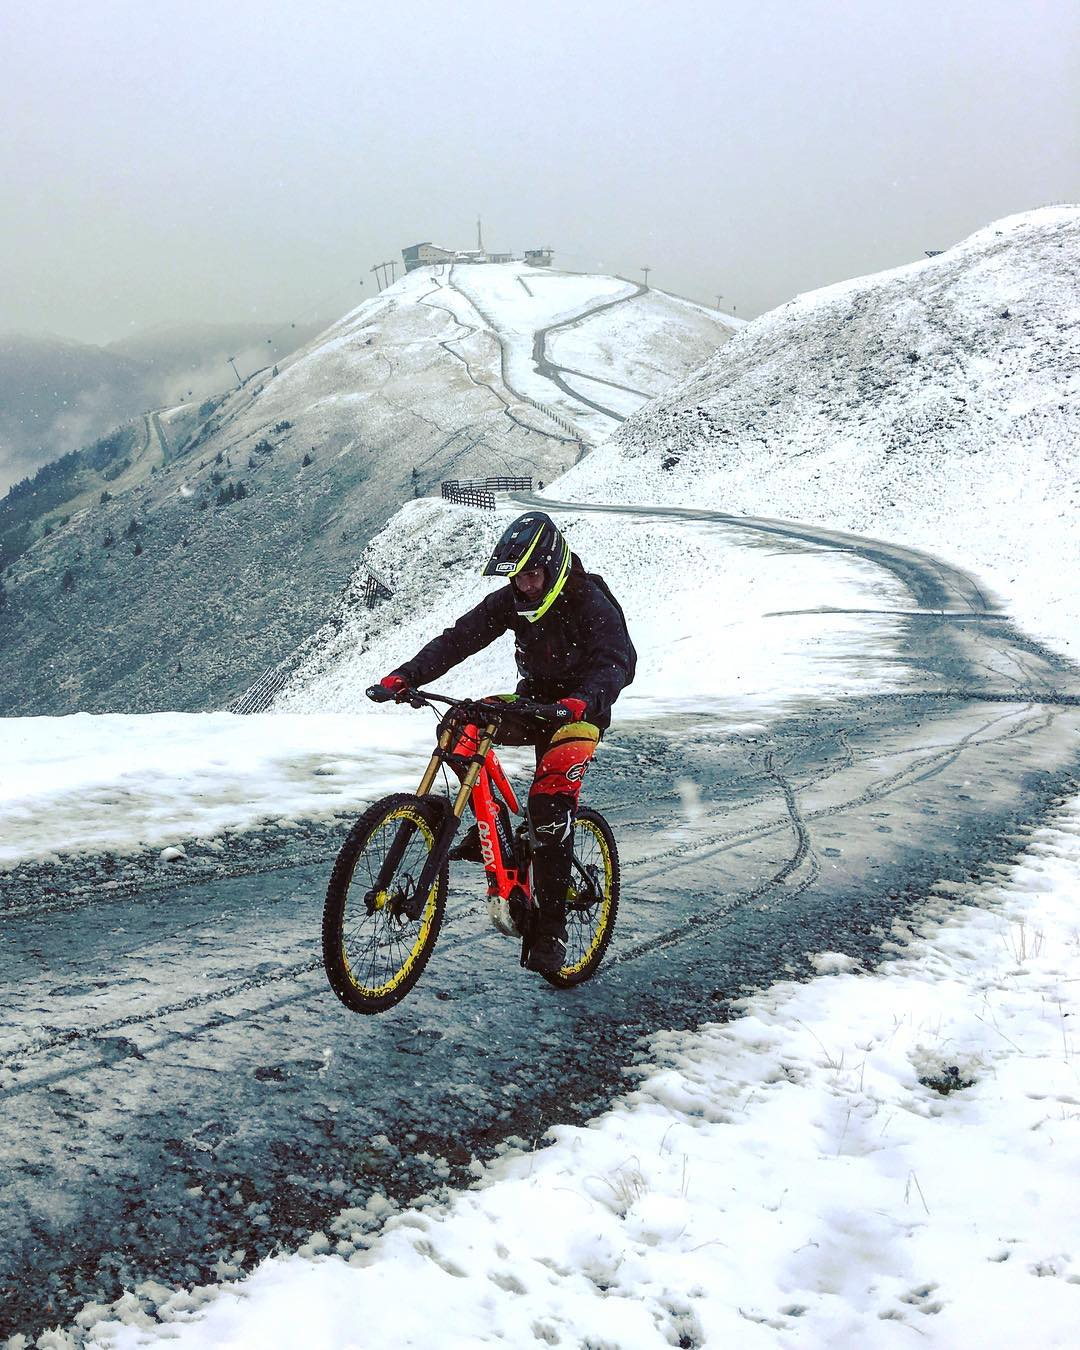 Why walk up when you can pedal?  HDCM team trip above the snow line! Winter is coming but no need to stop riding :) #haibike #emtb #xduro #downhill